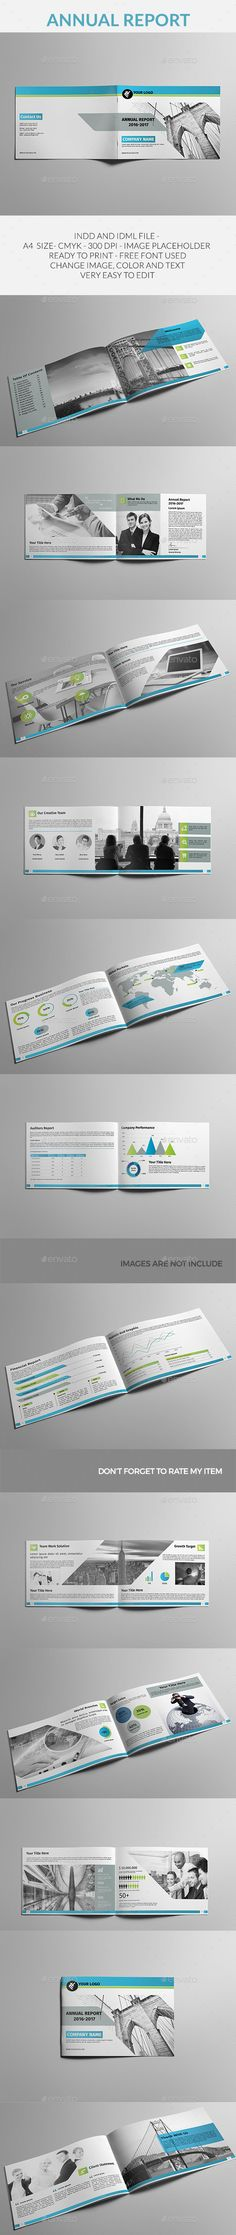 Annual Report Template InDesign INDD. Download here: http://graphicriver.net/item/annual-report/15298027?ref=ksioks